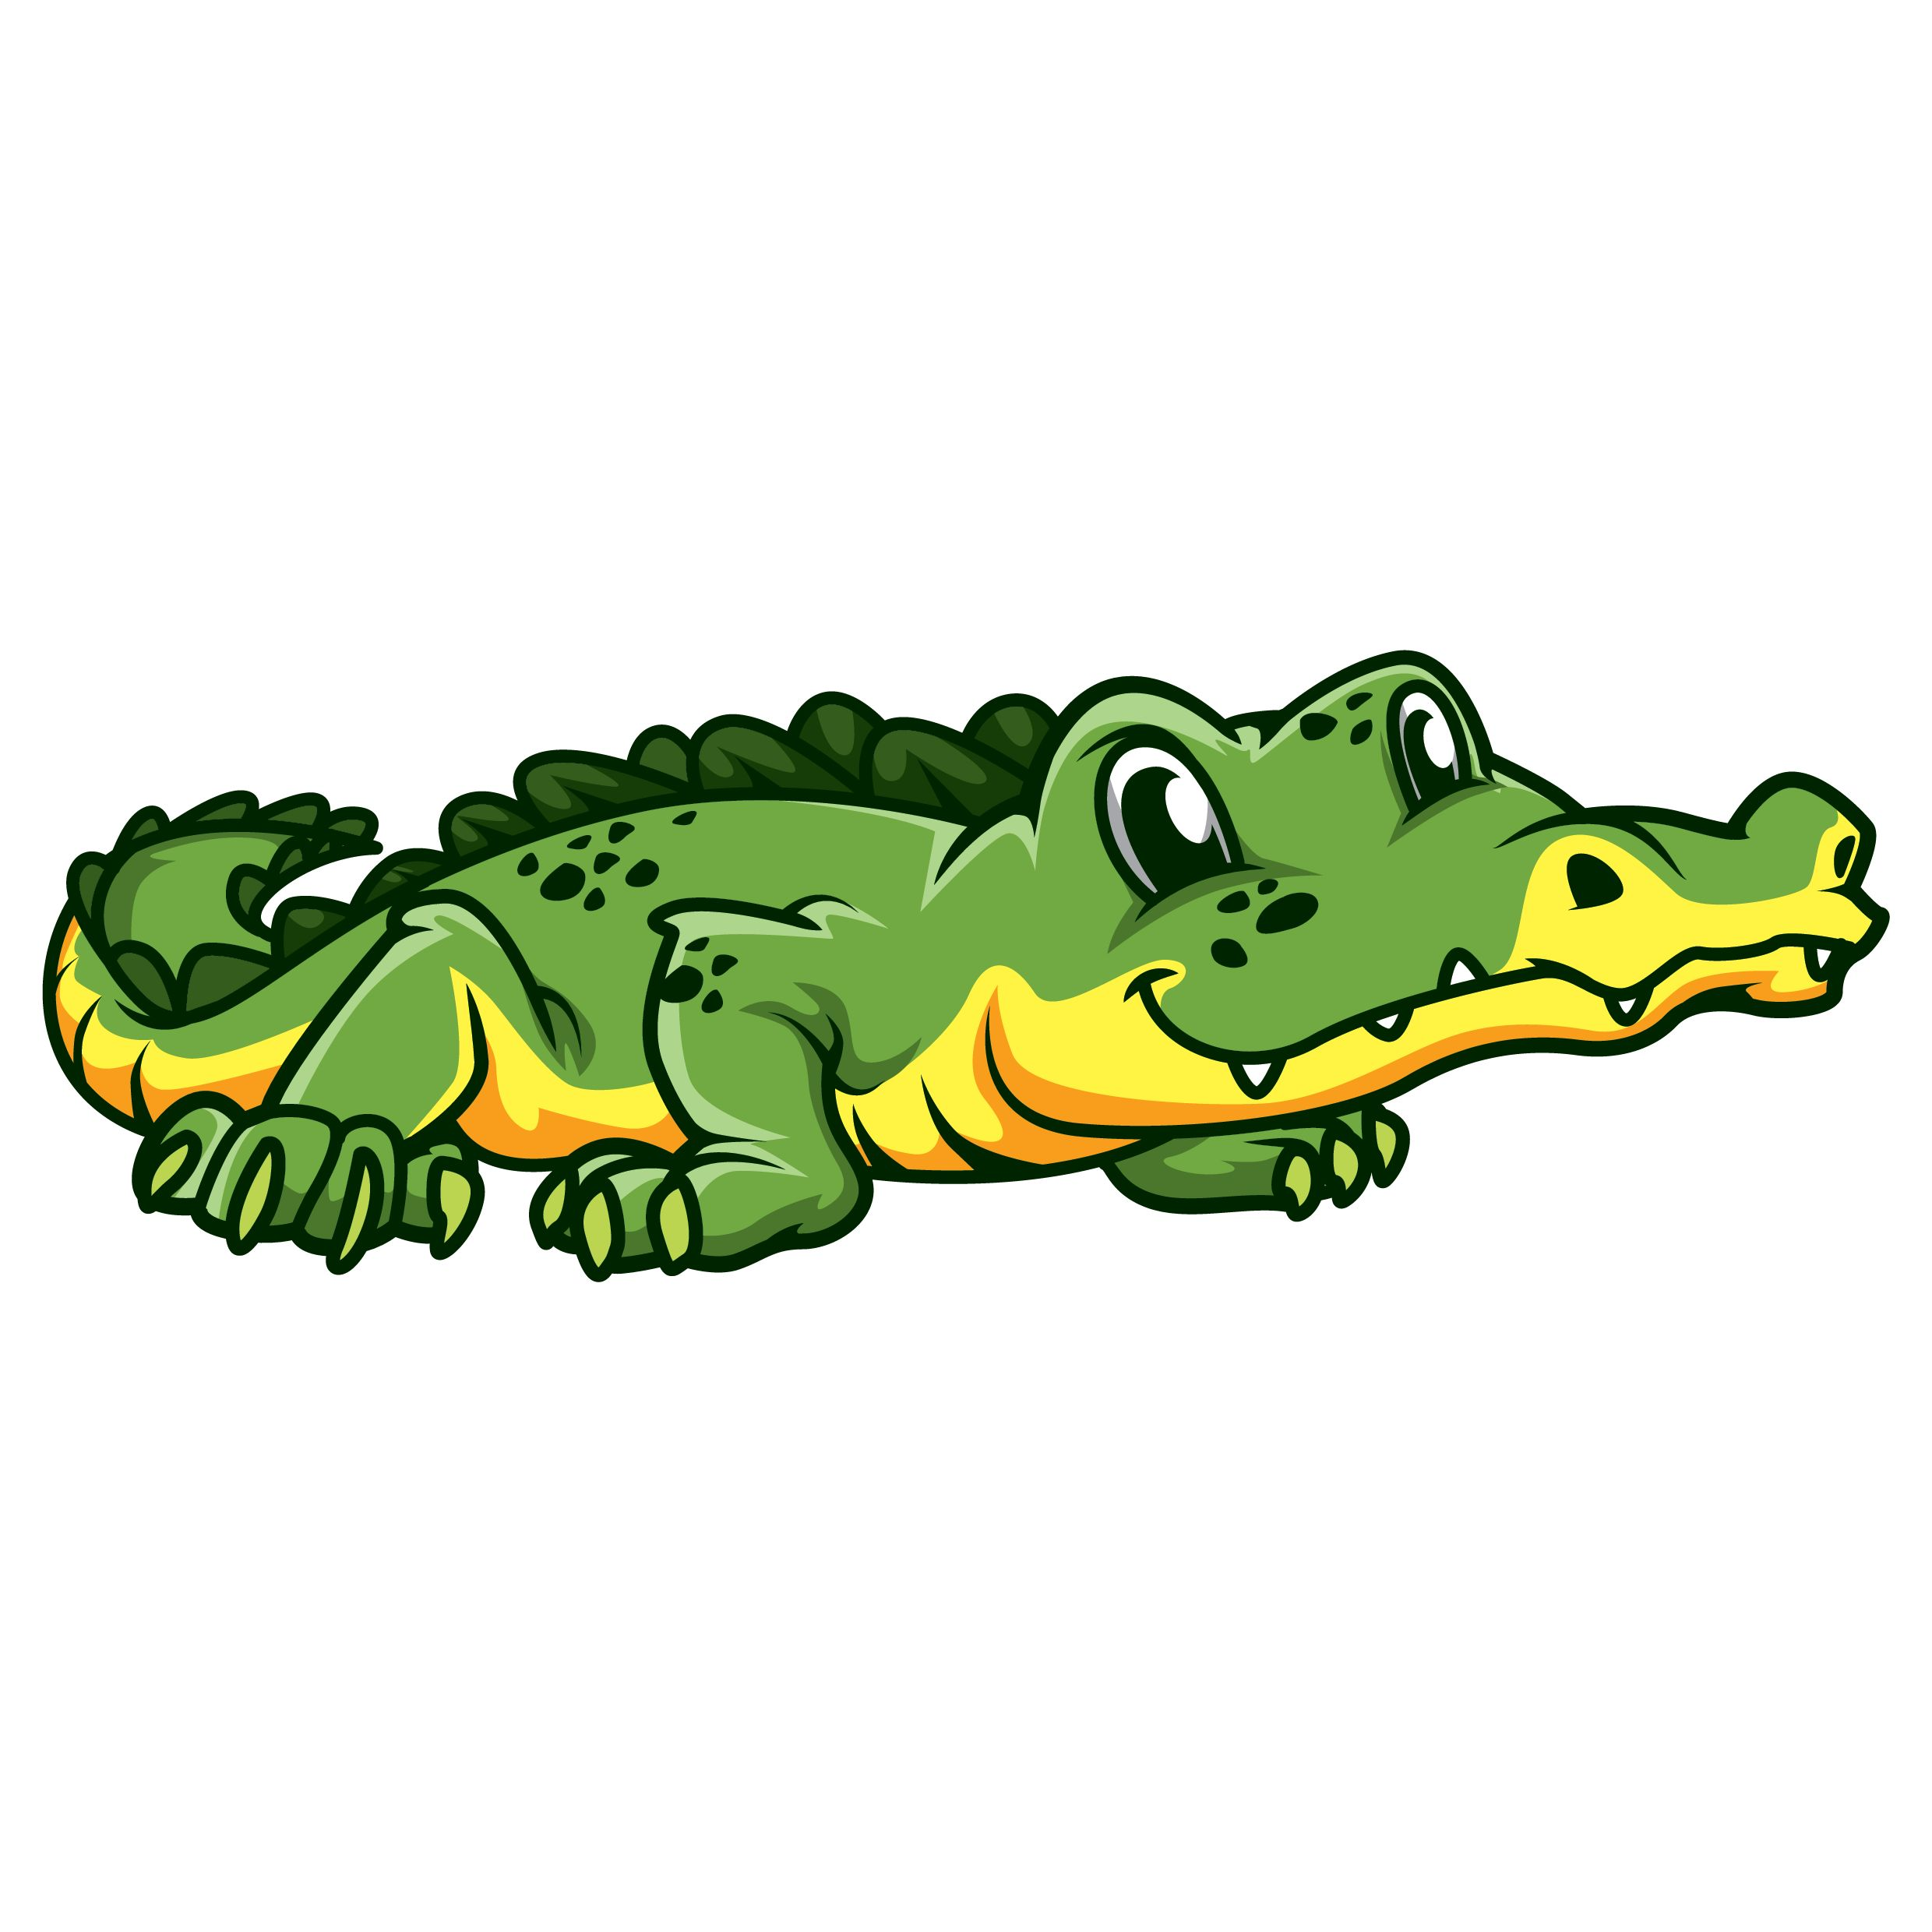 alligator-joke